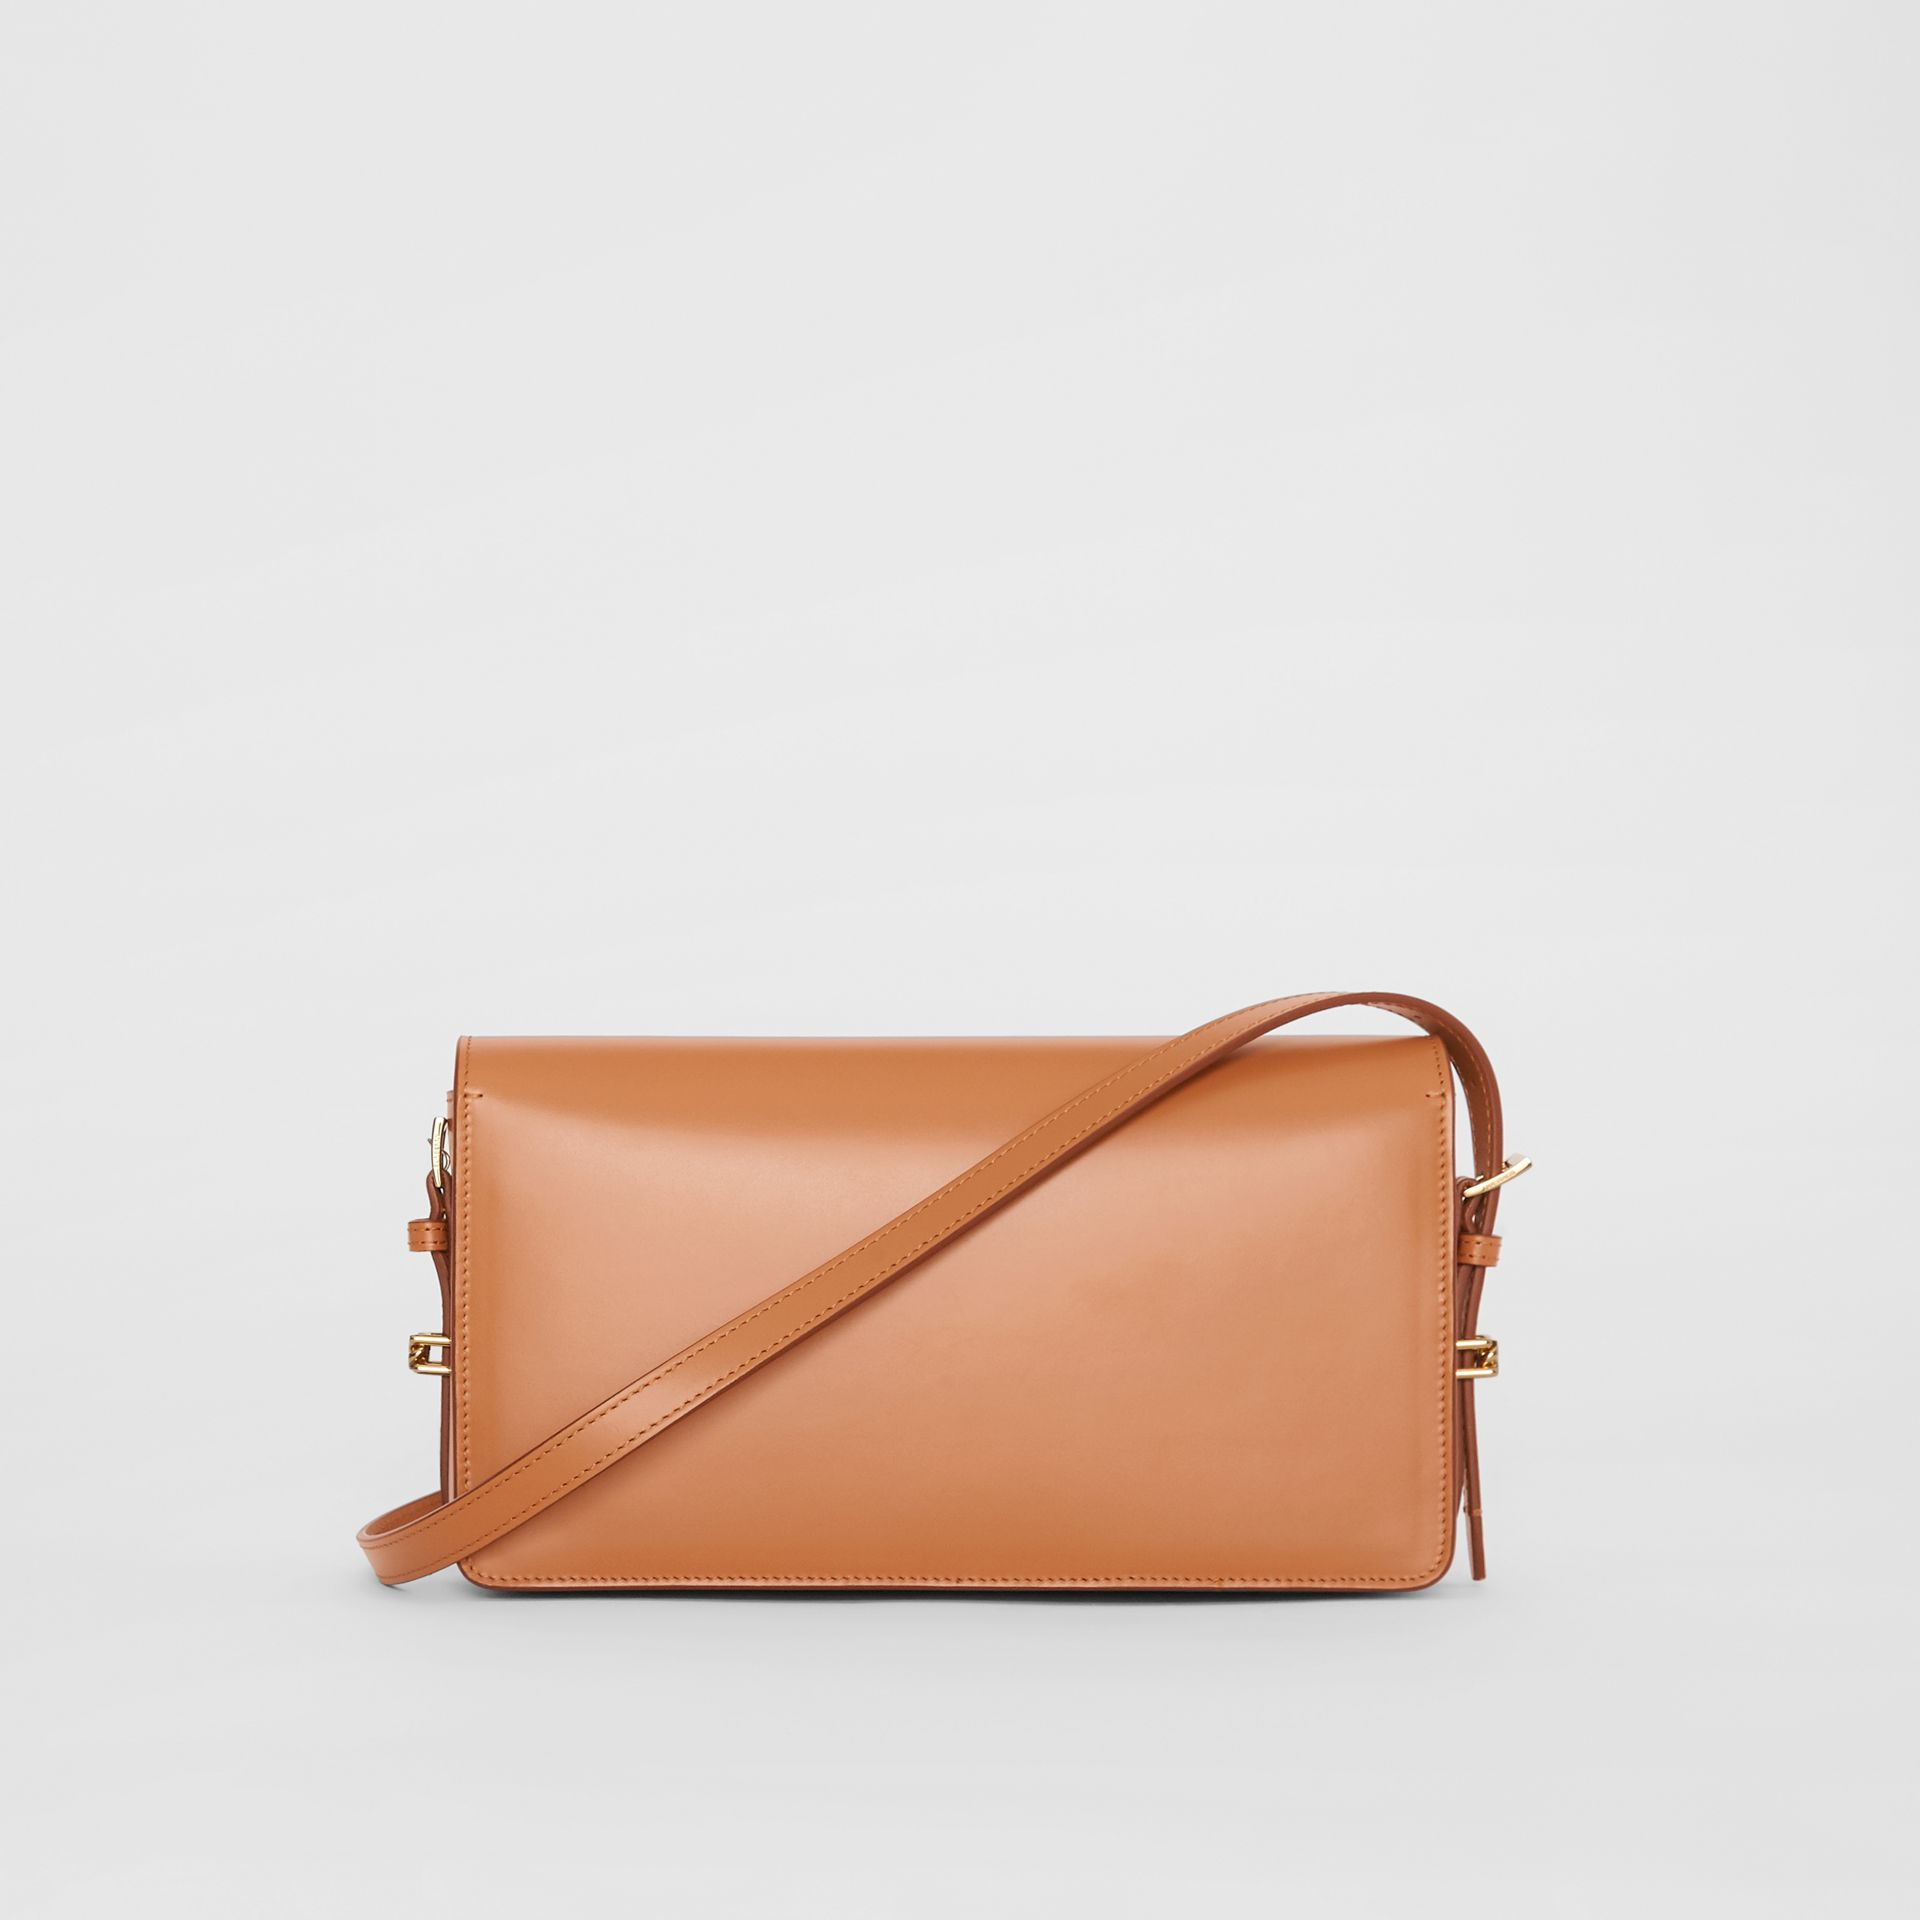 Mini sac Grace en cuir (Noix De Muscade) - Femme | Burberry Canada - photo de la galerie 7